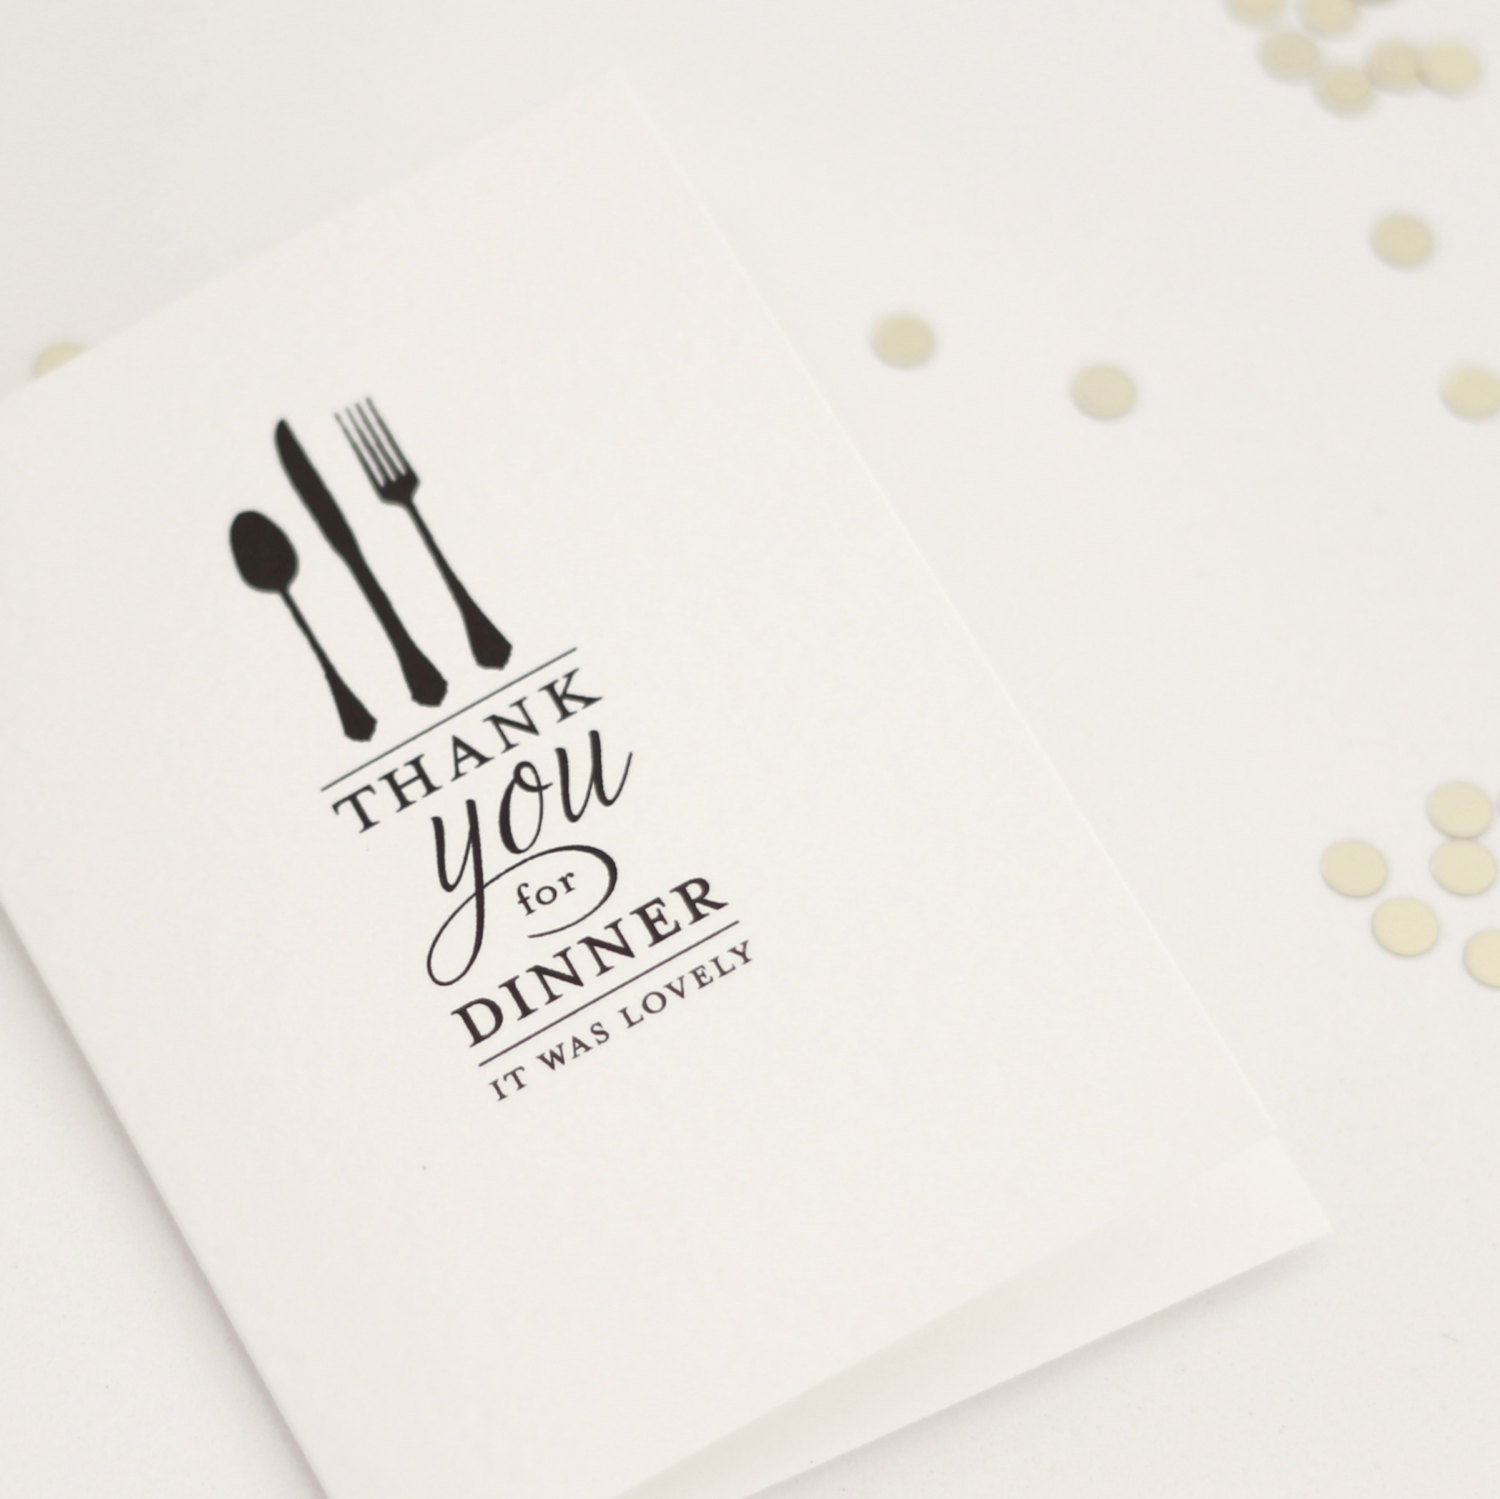 Favorite THANK YOU for DINNER it was lovely / thank you card // dinner TI52